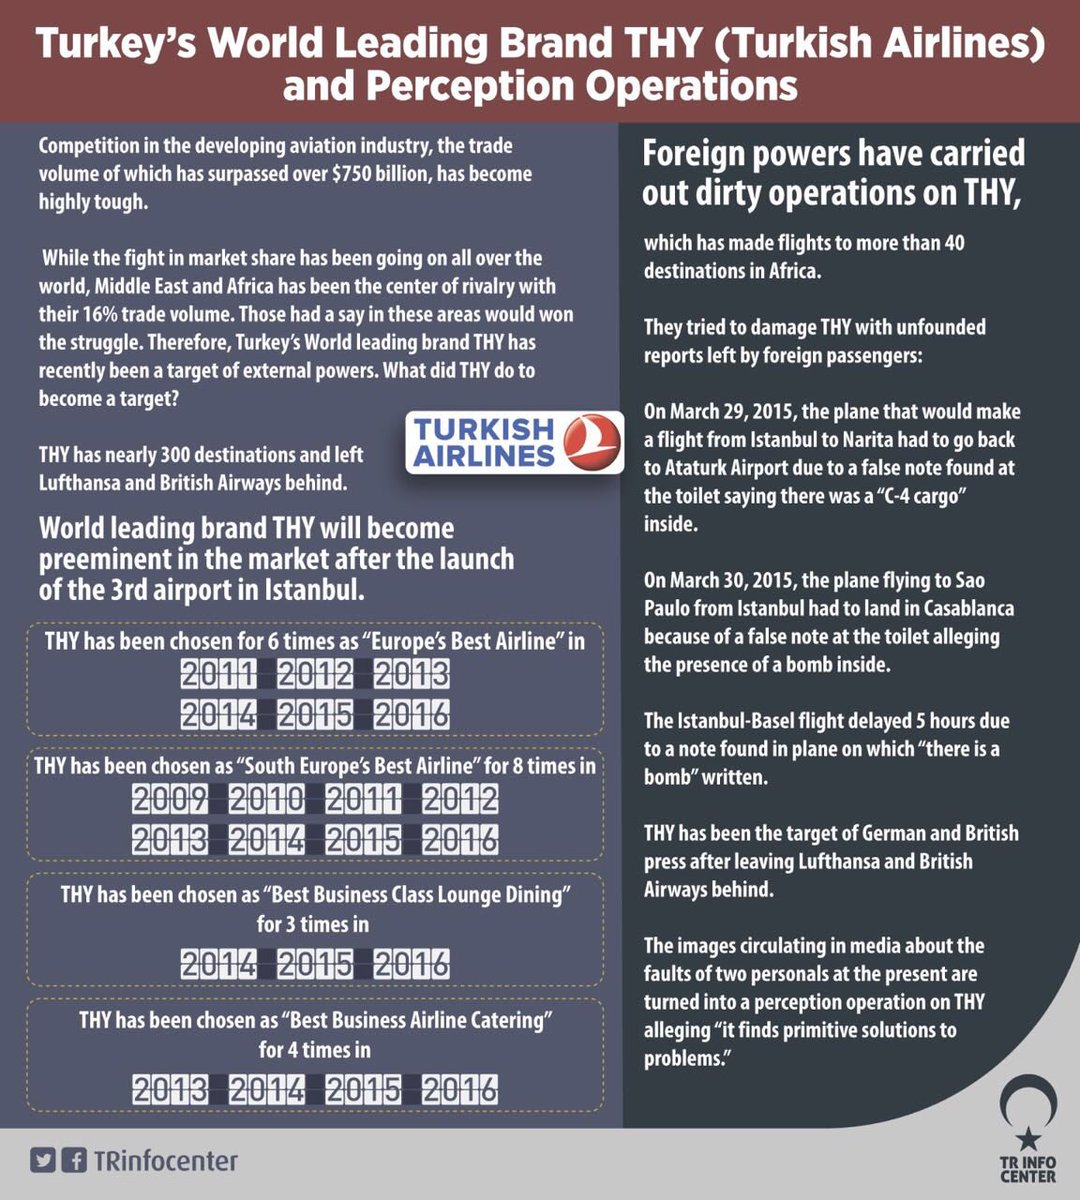 Turkey's World leading brand THY (Turkish Airlines) and perception operations